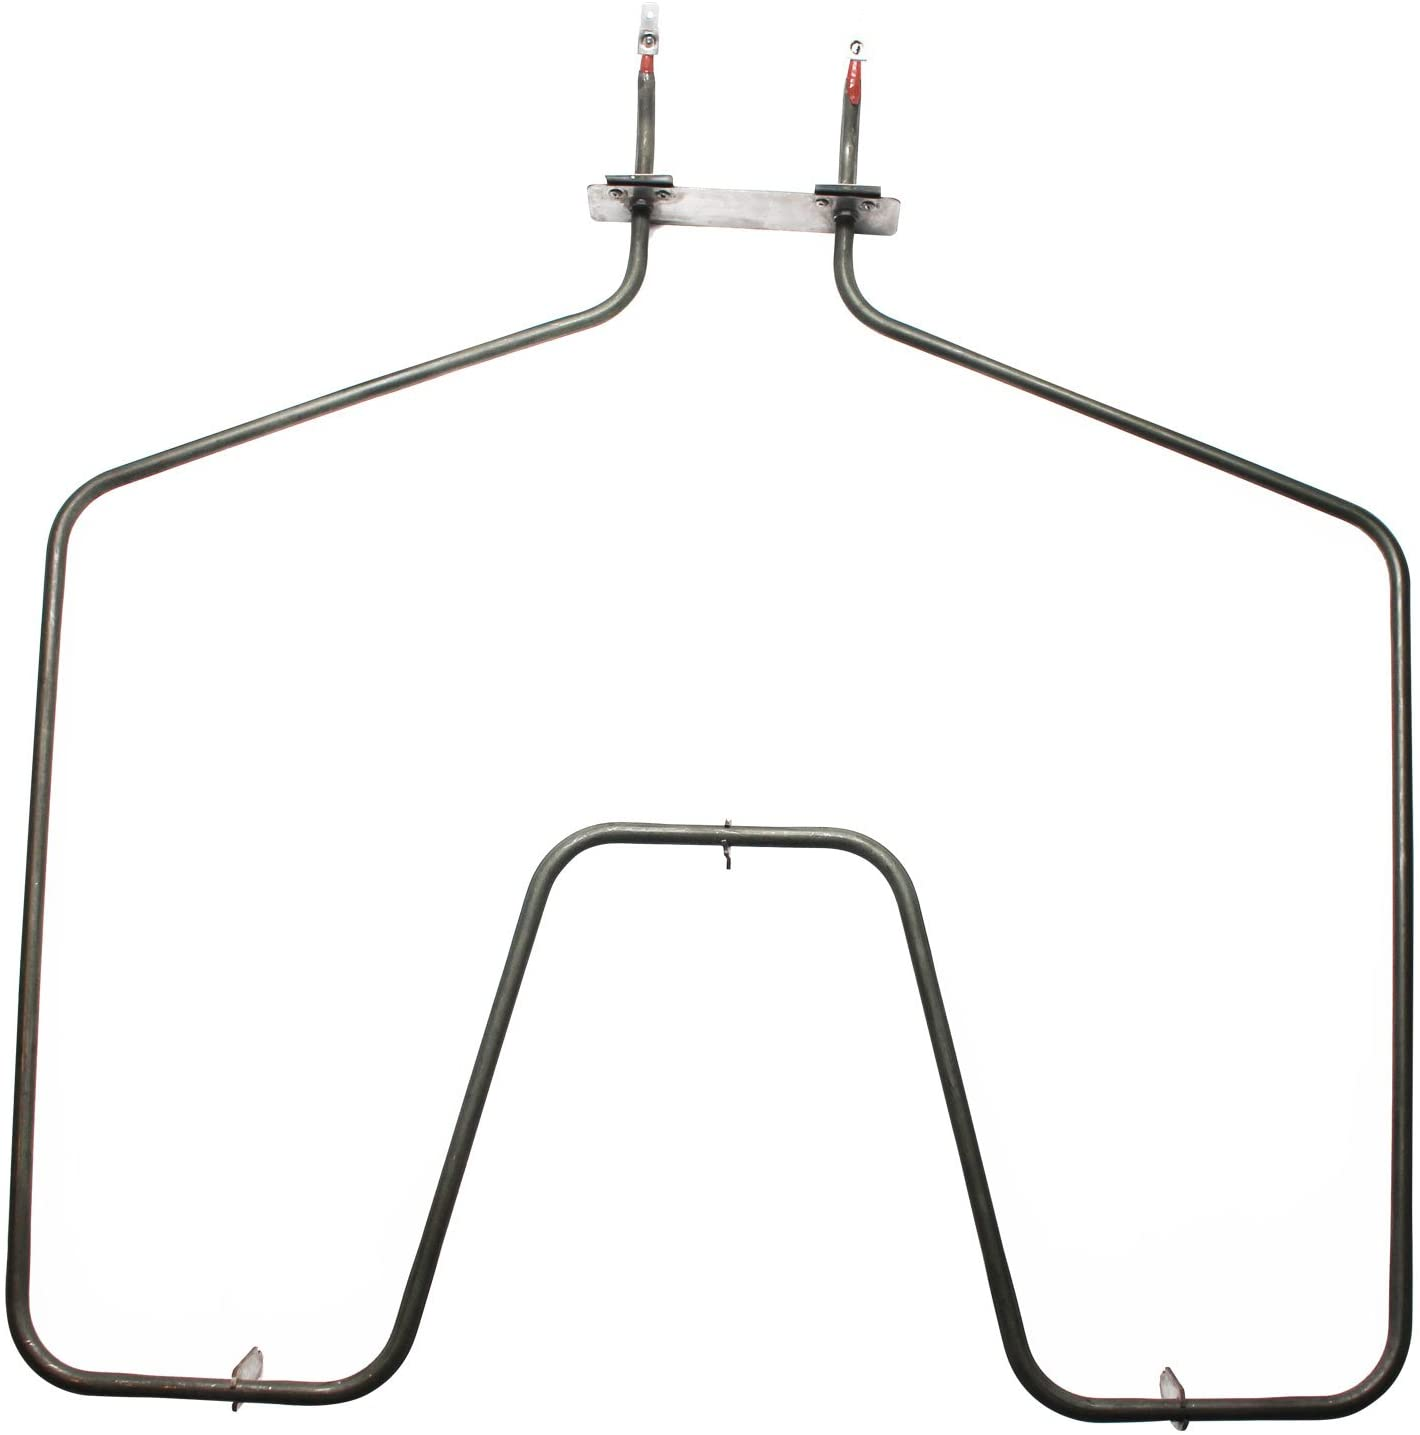 UpStart Components Replacement for General Electric P2B918DEM1WW Bake Element - Compatible with General Electric WB44K10005 Oven Heating Element